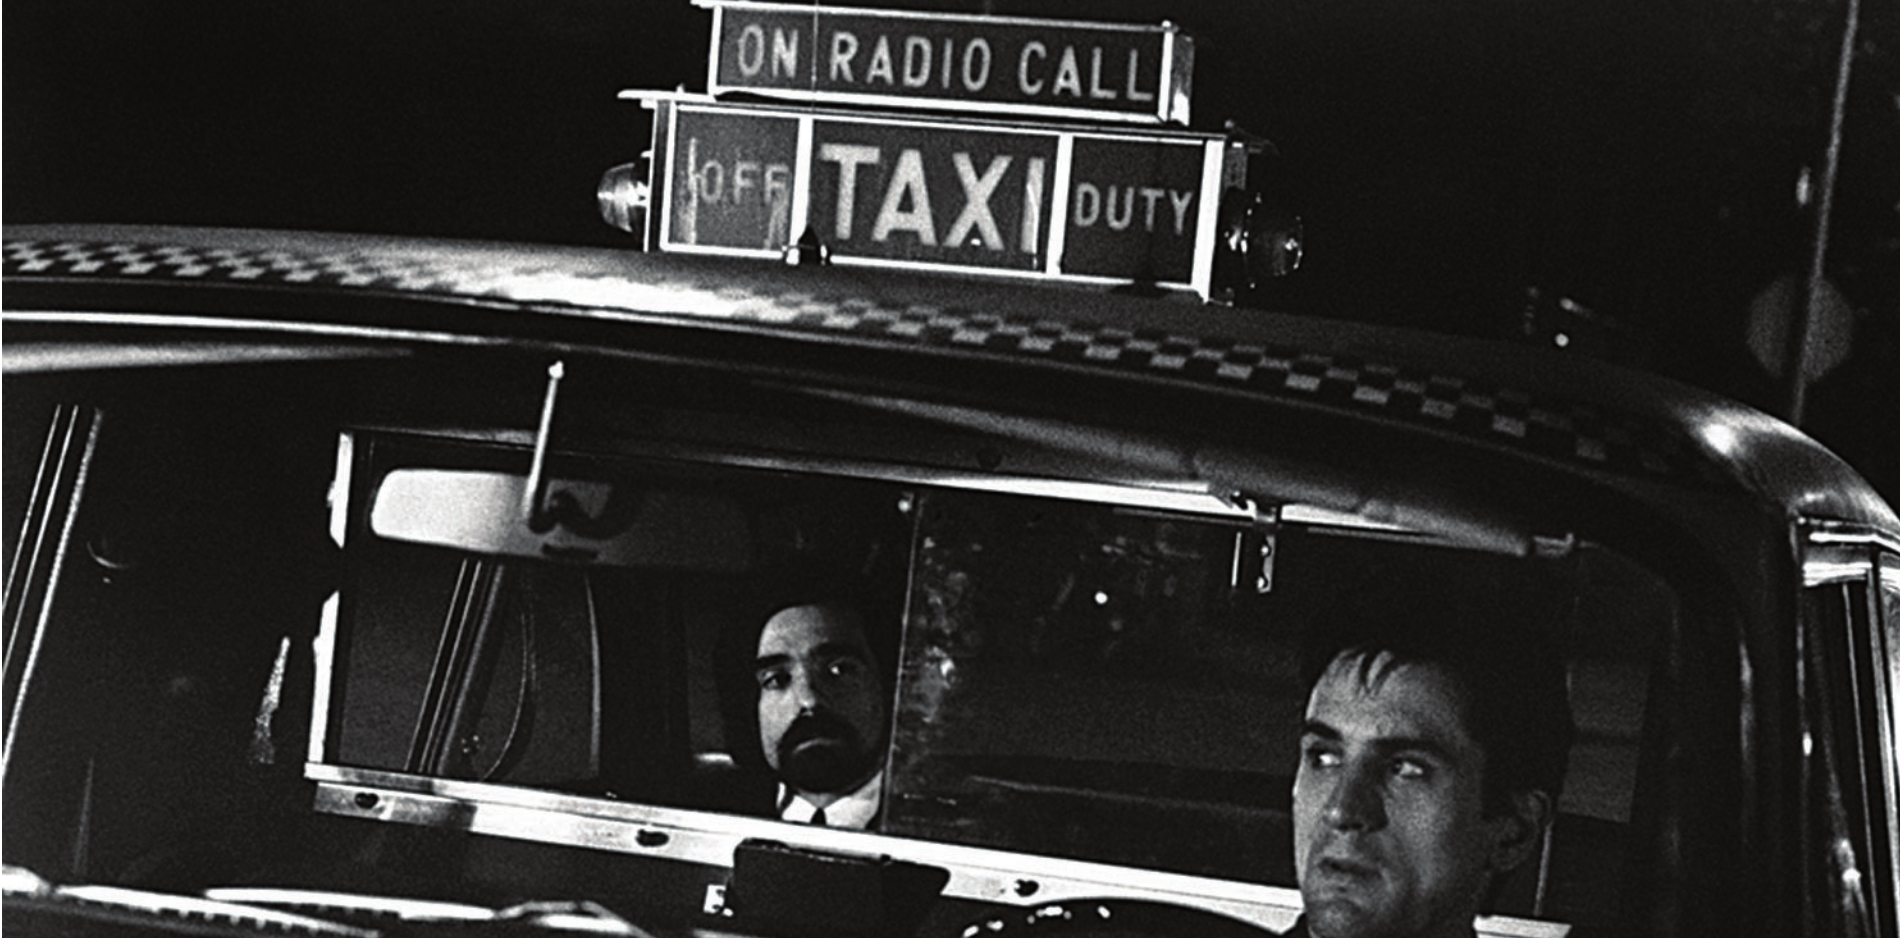 an introduction to the analysis of taxi driver and the characters in it The uber app incorporates fleet and driver management, social interaction between driver and passenger, taxi hailing and payment the threat posed to the incumbent taxi service providers, regulators and users resides in the transfer of control over aspects of an entire industry—such as pricing, discrimination and work allocation—to whoever controls the.